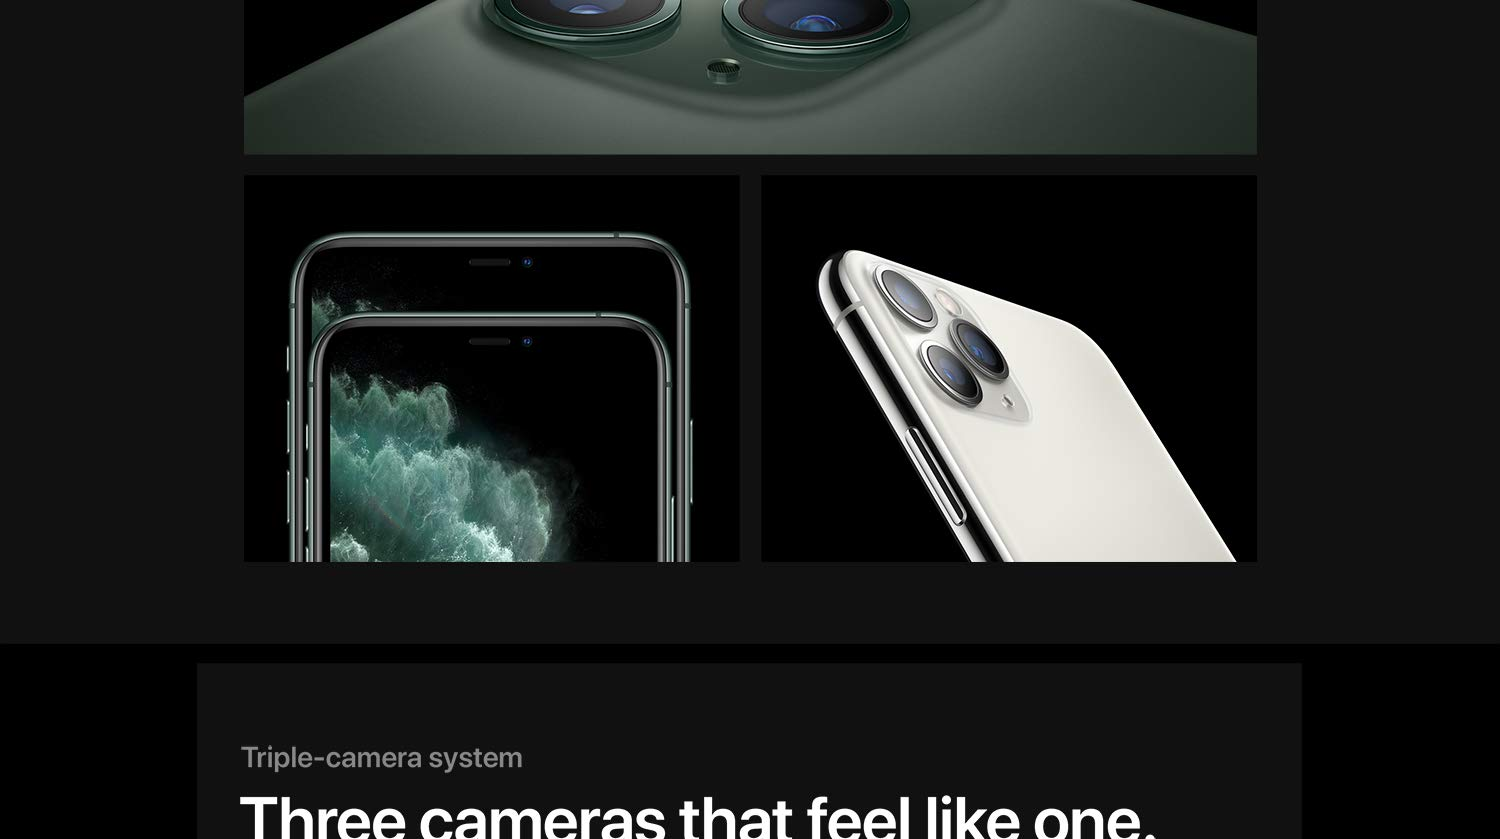 Triple camera system. Three cameras that feel like one.